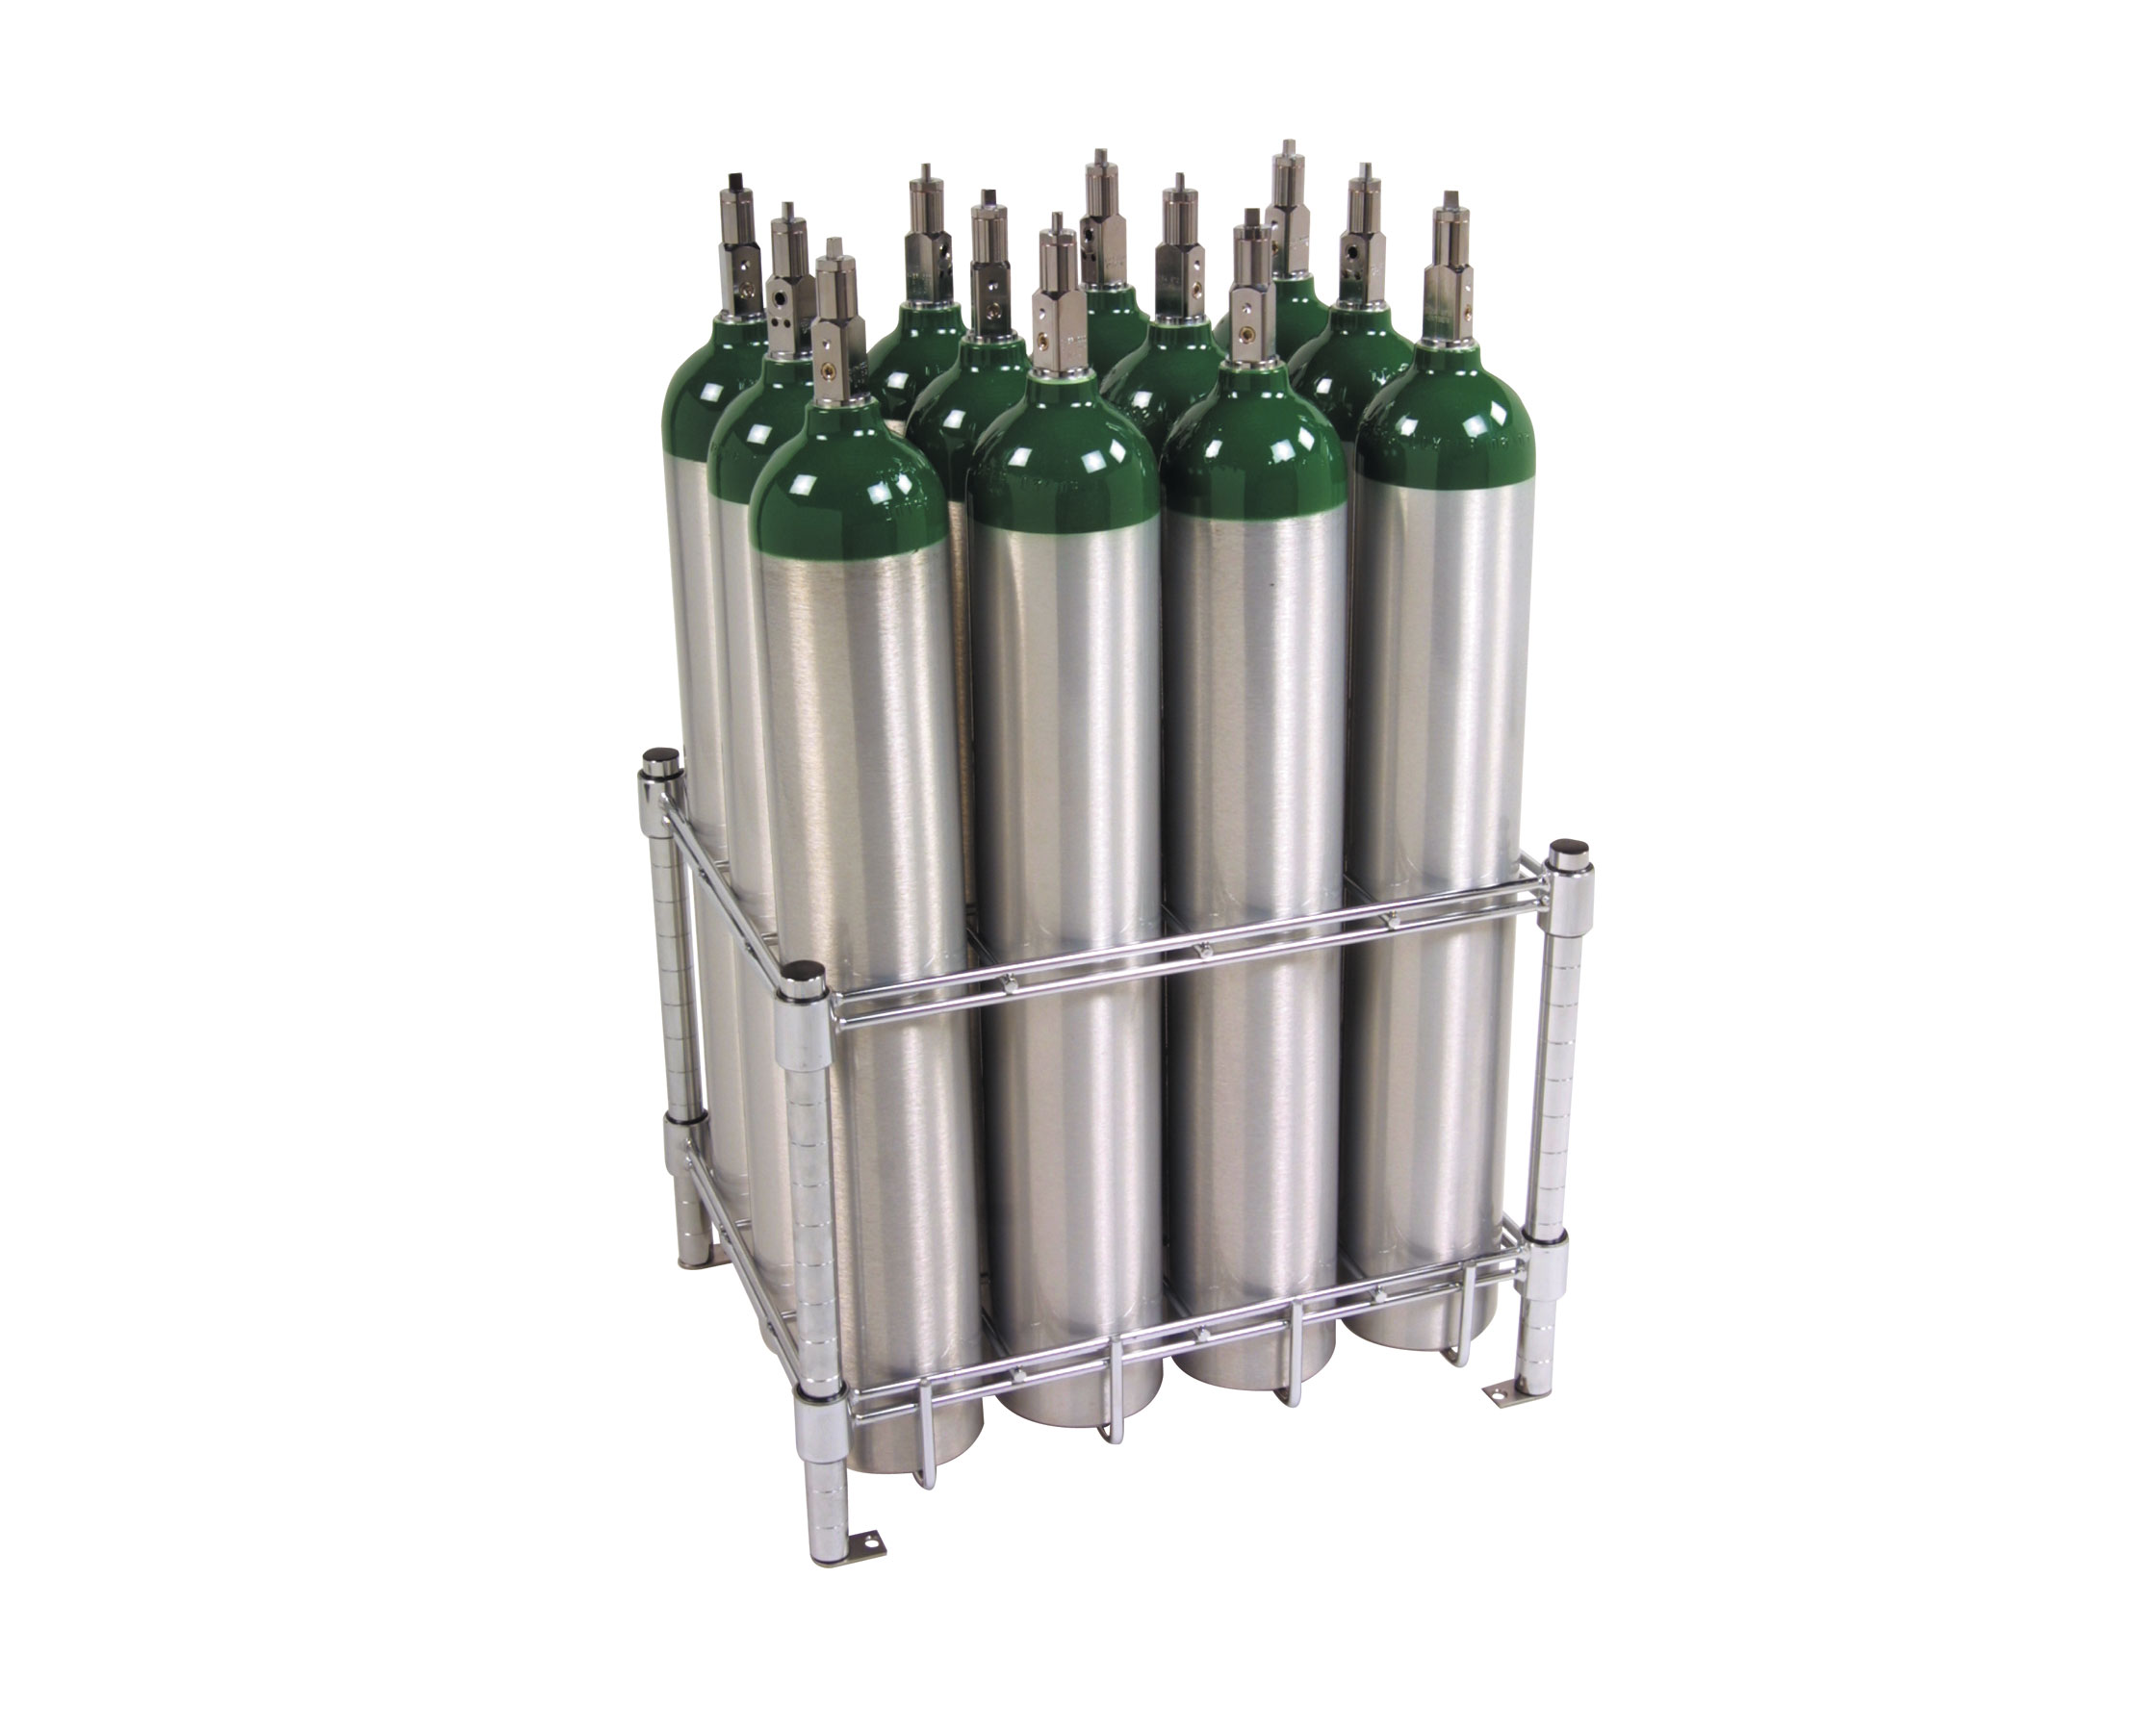 12 e oxygen cylinder rack from wt farley